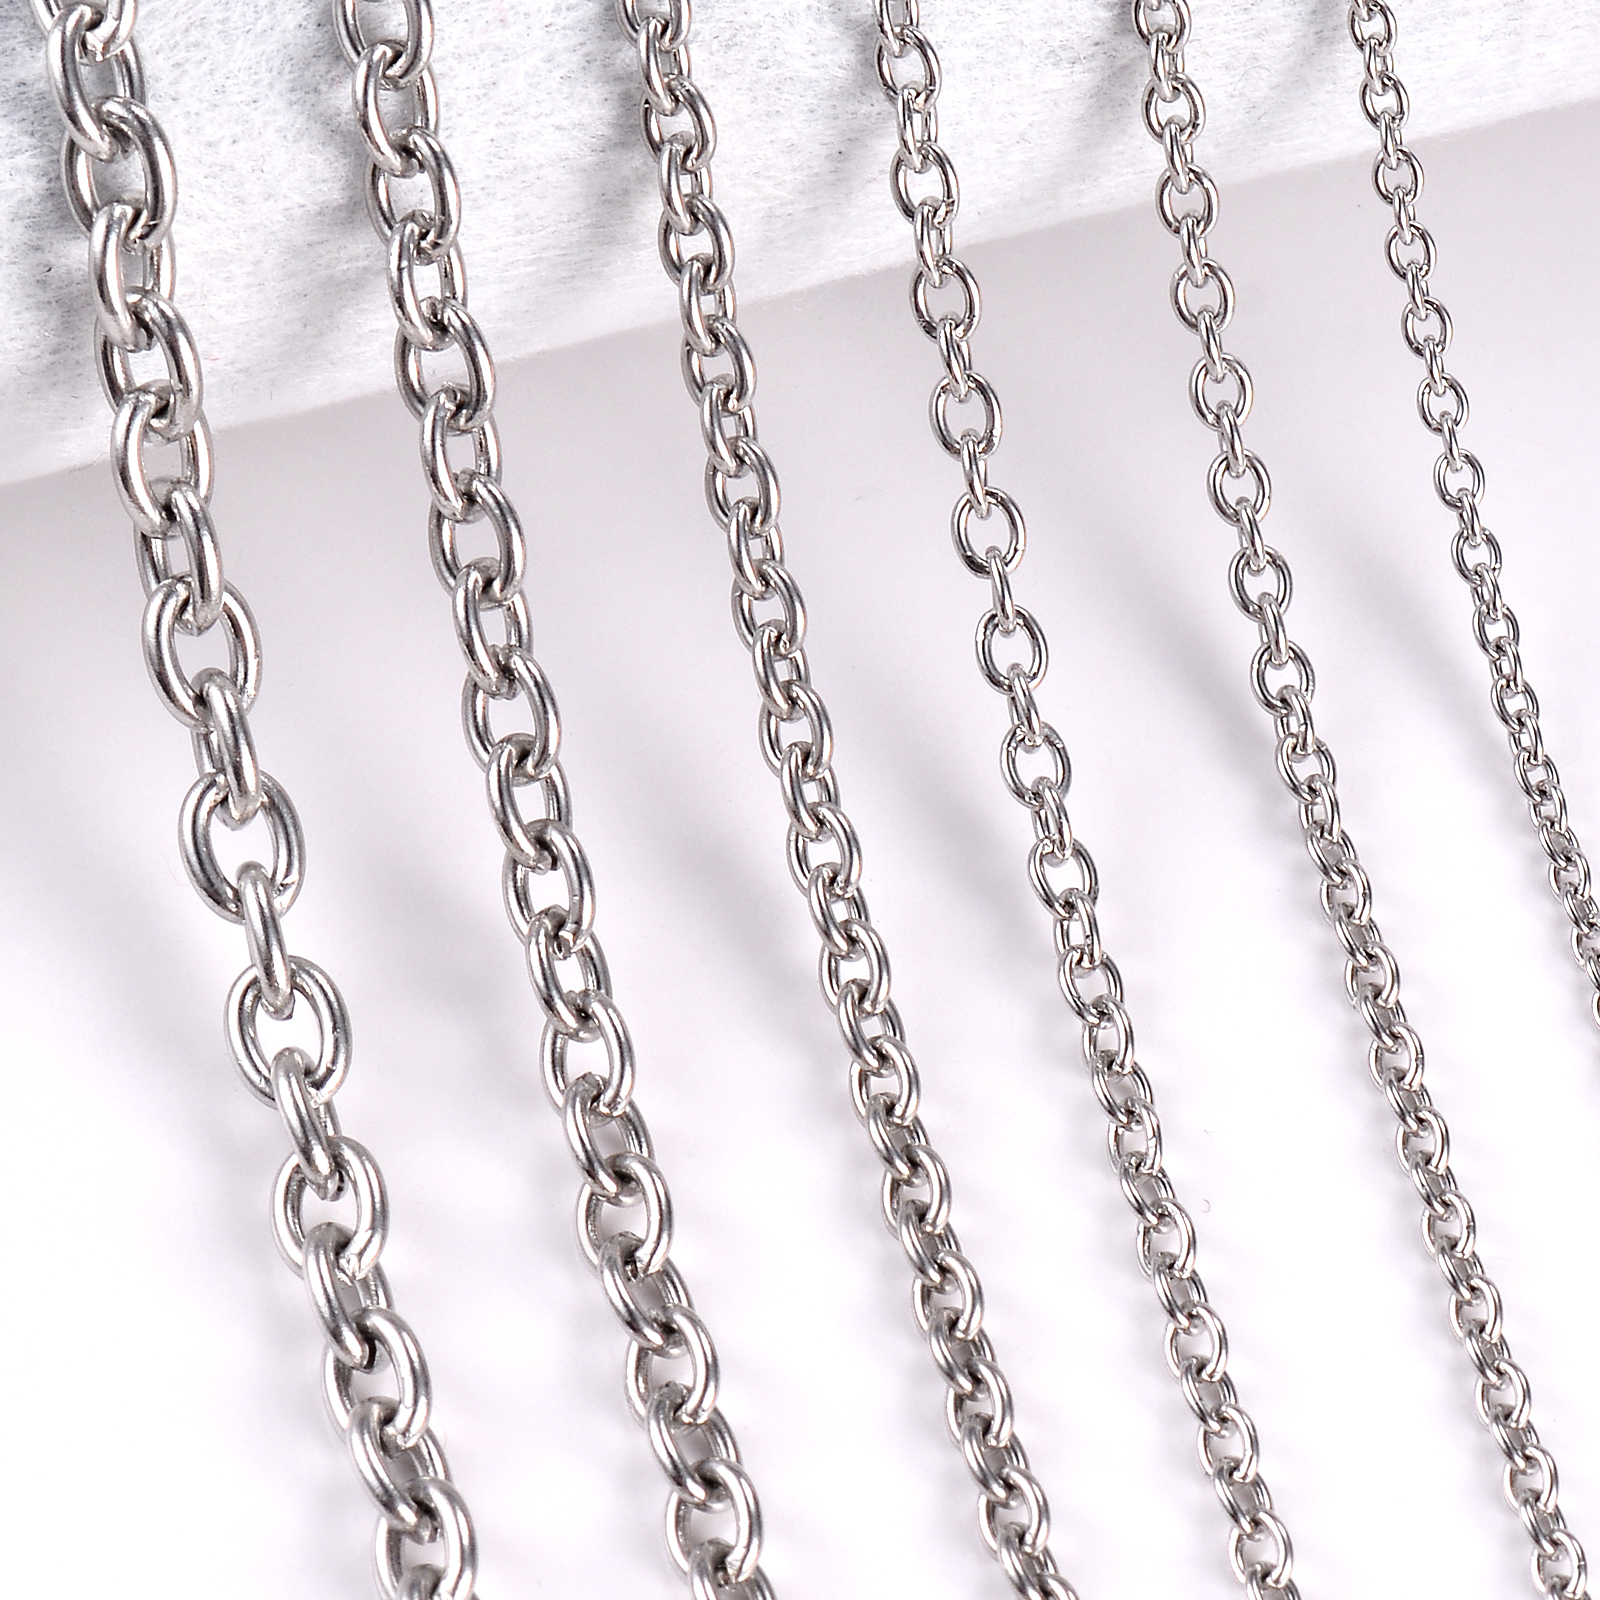 1Pc Stainless Steel Cross O Chain Necklace For Women Men DIY Jewelry Thin Bracelet Necklace